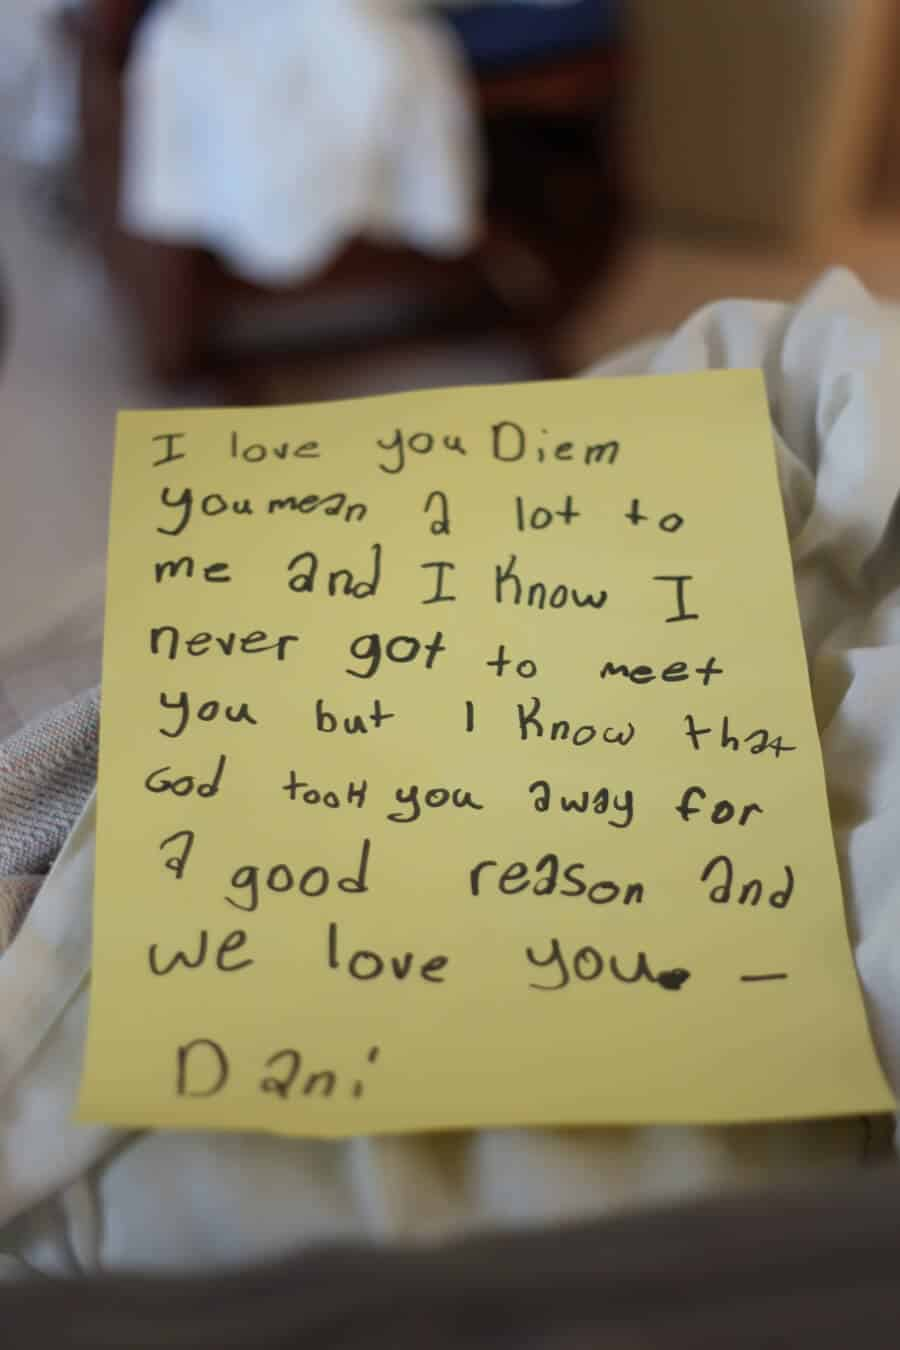 A note from a 7 year old losing her baby sister it's on yellow paper. I love you Diem you mean a lot to me and I know I never got to meet you but I know that God took you away for a good reason and we love you. Dani